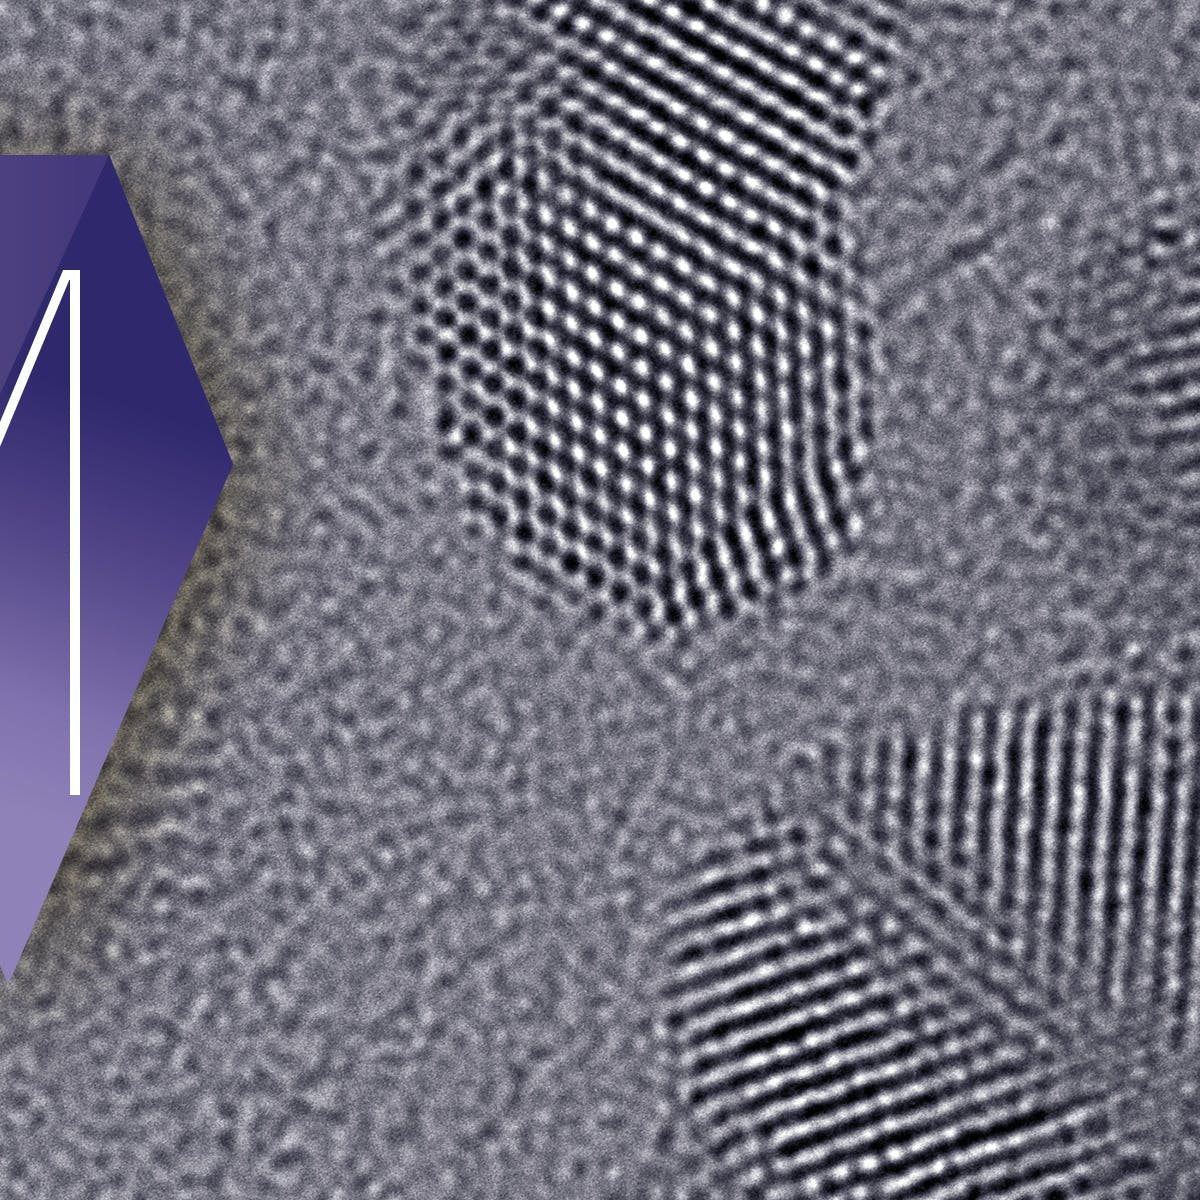 Transmission electron microscopy for materials science